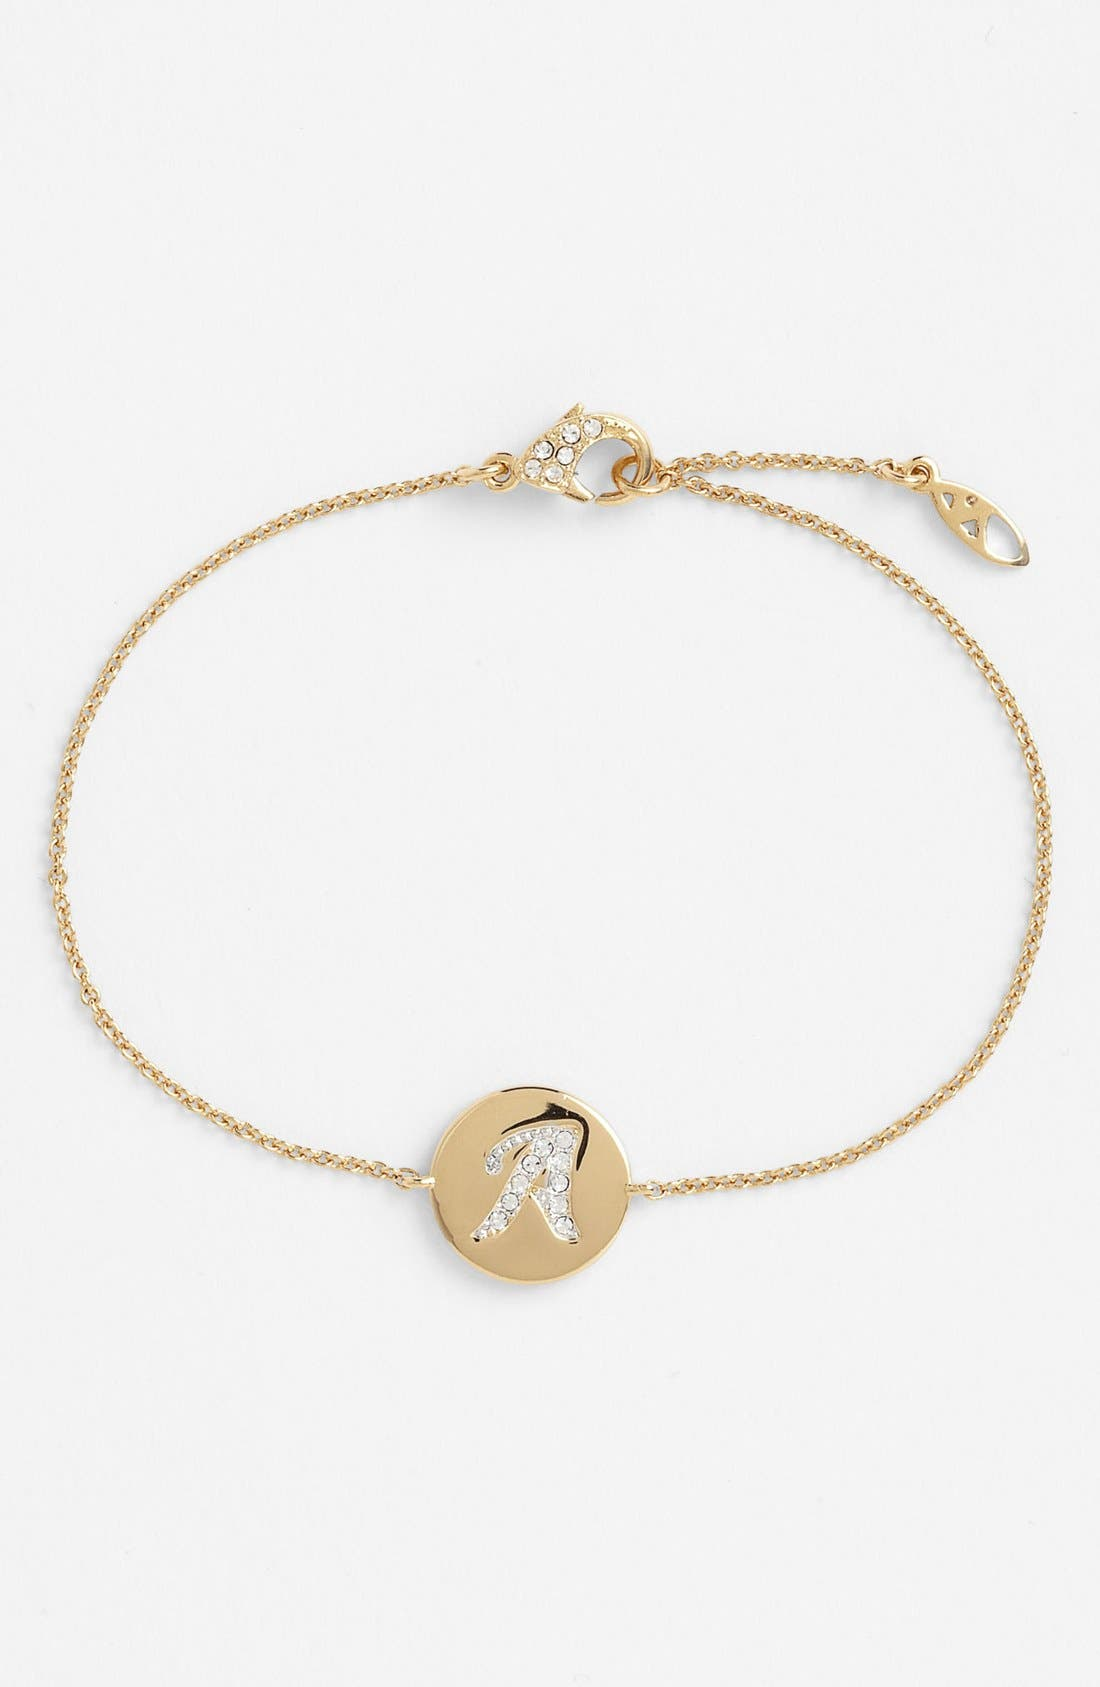 Alternate Image 1 Selected - Nadri Boxed Initial Station Bracelet (Nordstrom Exclusive)